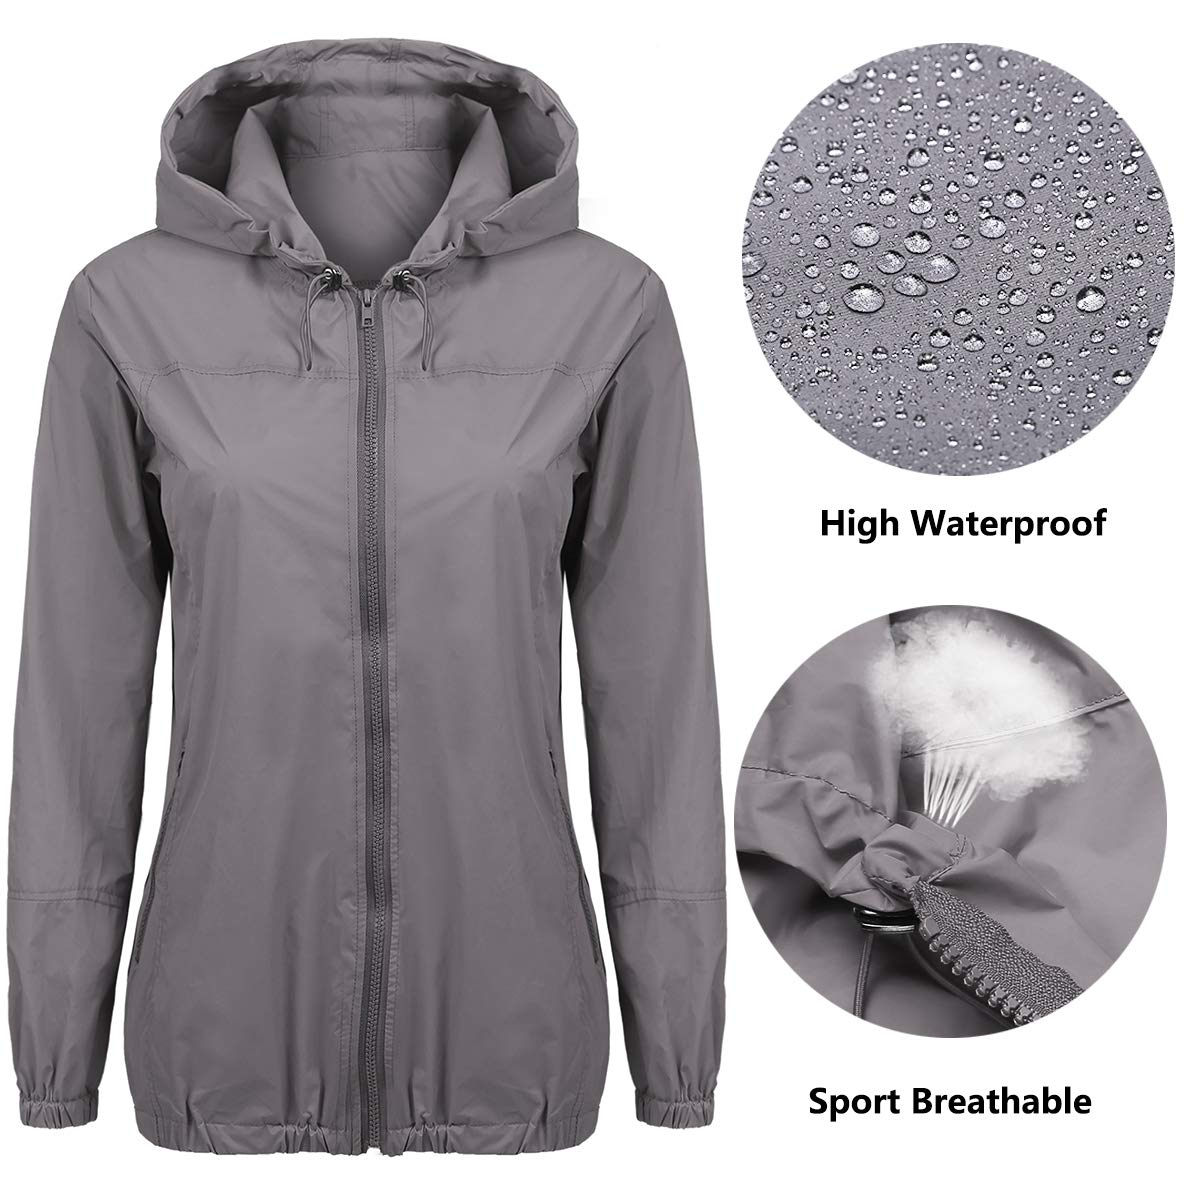 Beyove Women s Lightweight Rain Jacket Waterproof Hood Fashion Outdoor Rain  Coat S-XXL product image db9bfa64b